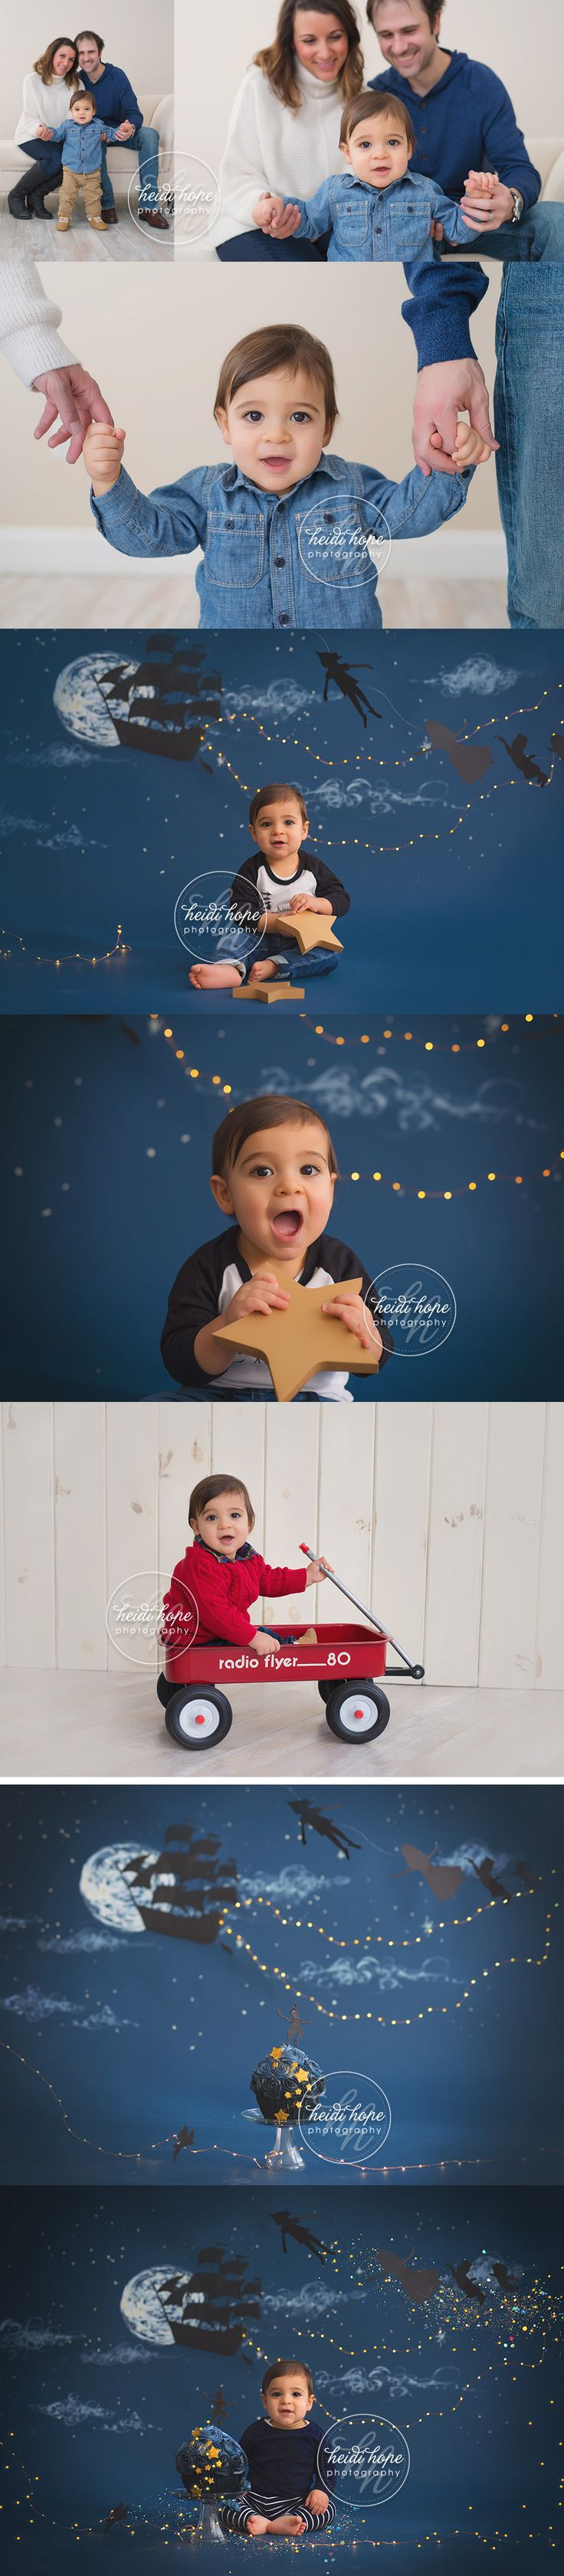 A magical peter pan first birthday cake smash for baby Z by Boston Baby Photographer. | Heidi Hope Photography